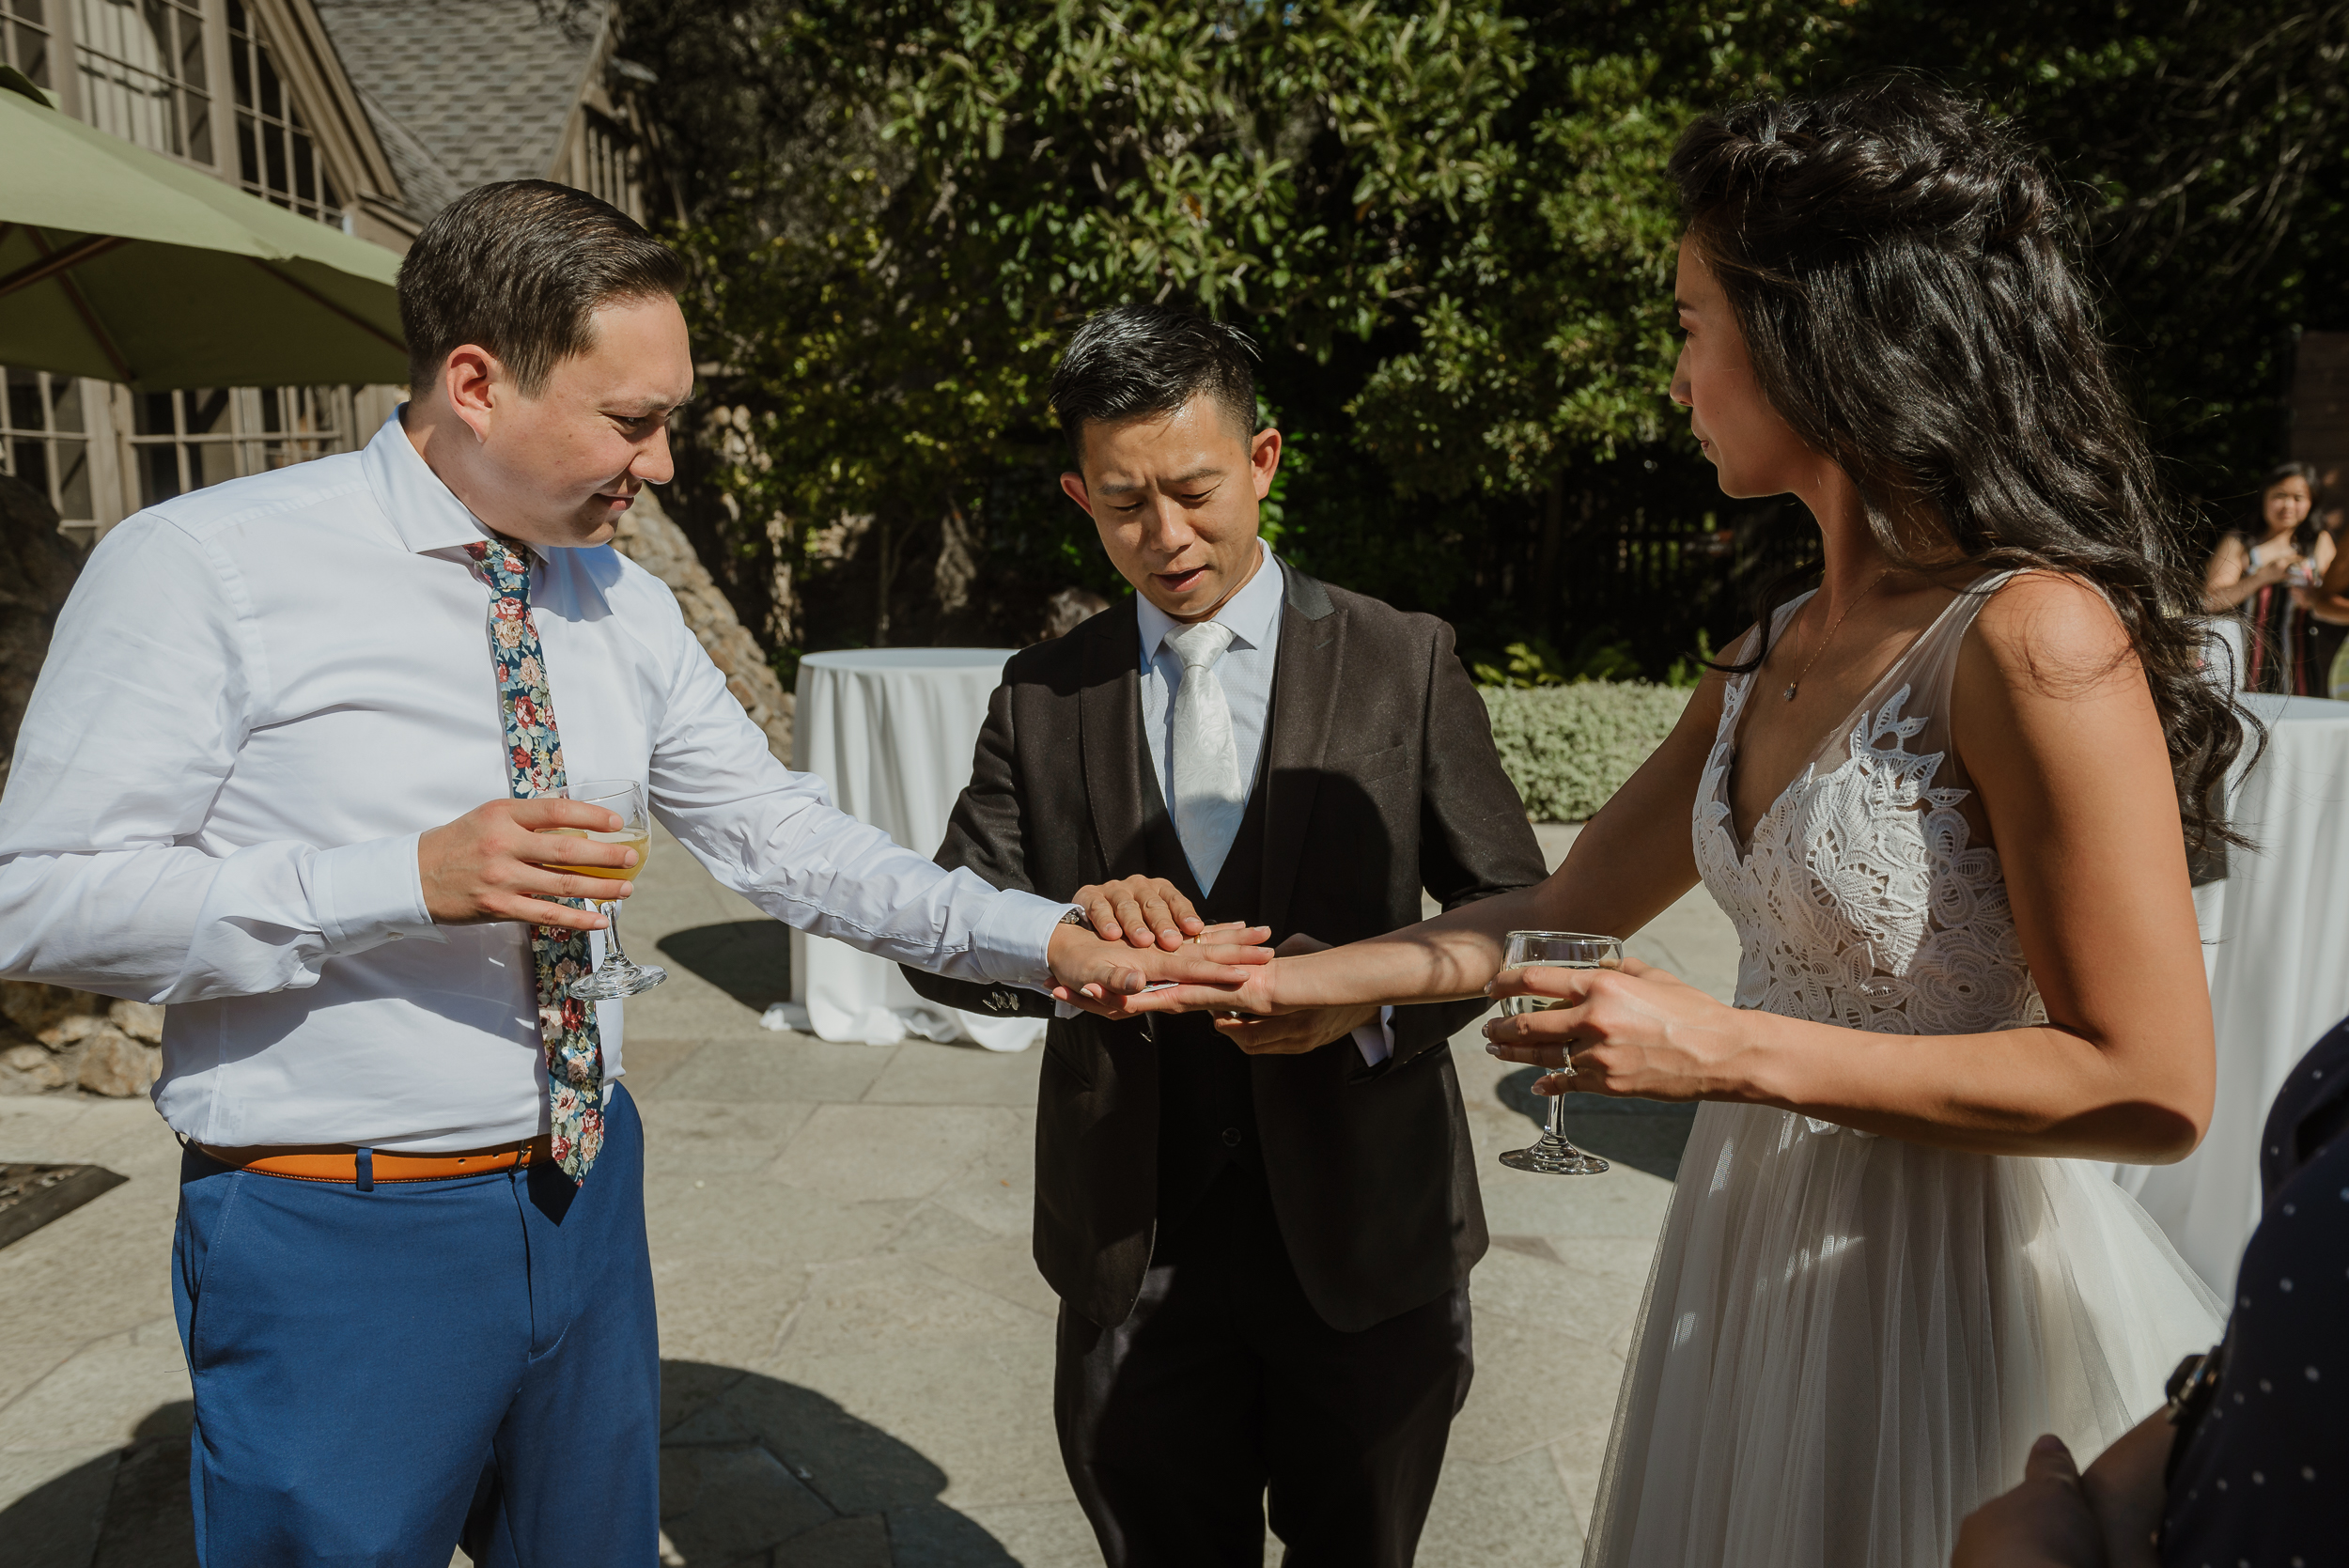 53-berkeley-tilden-park-brazilian-room-wedding-vivianchen-417.jpg